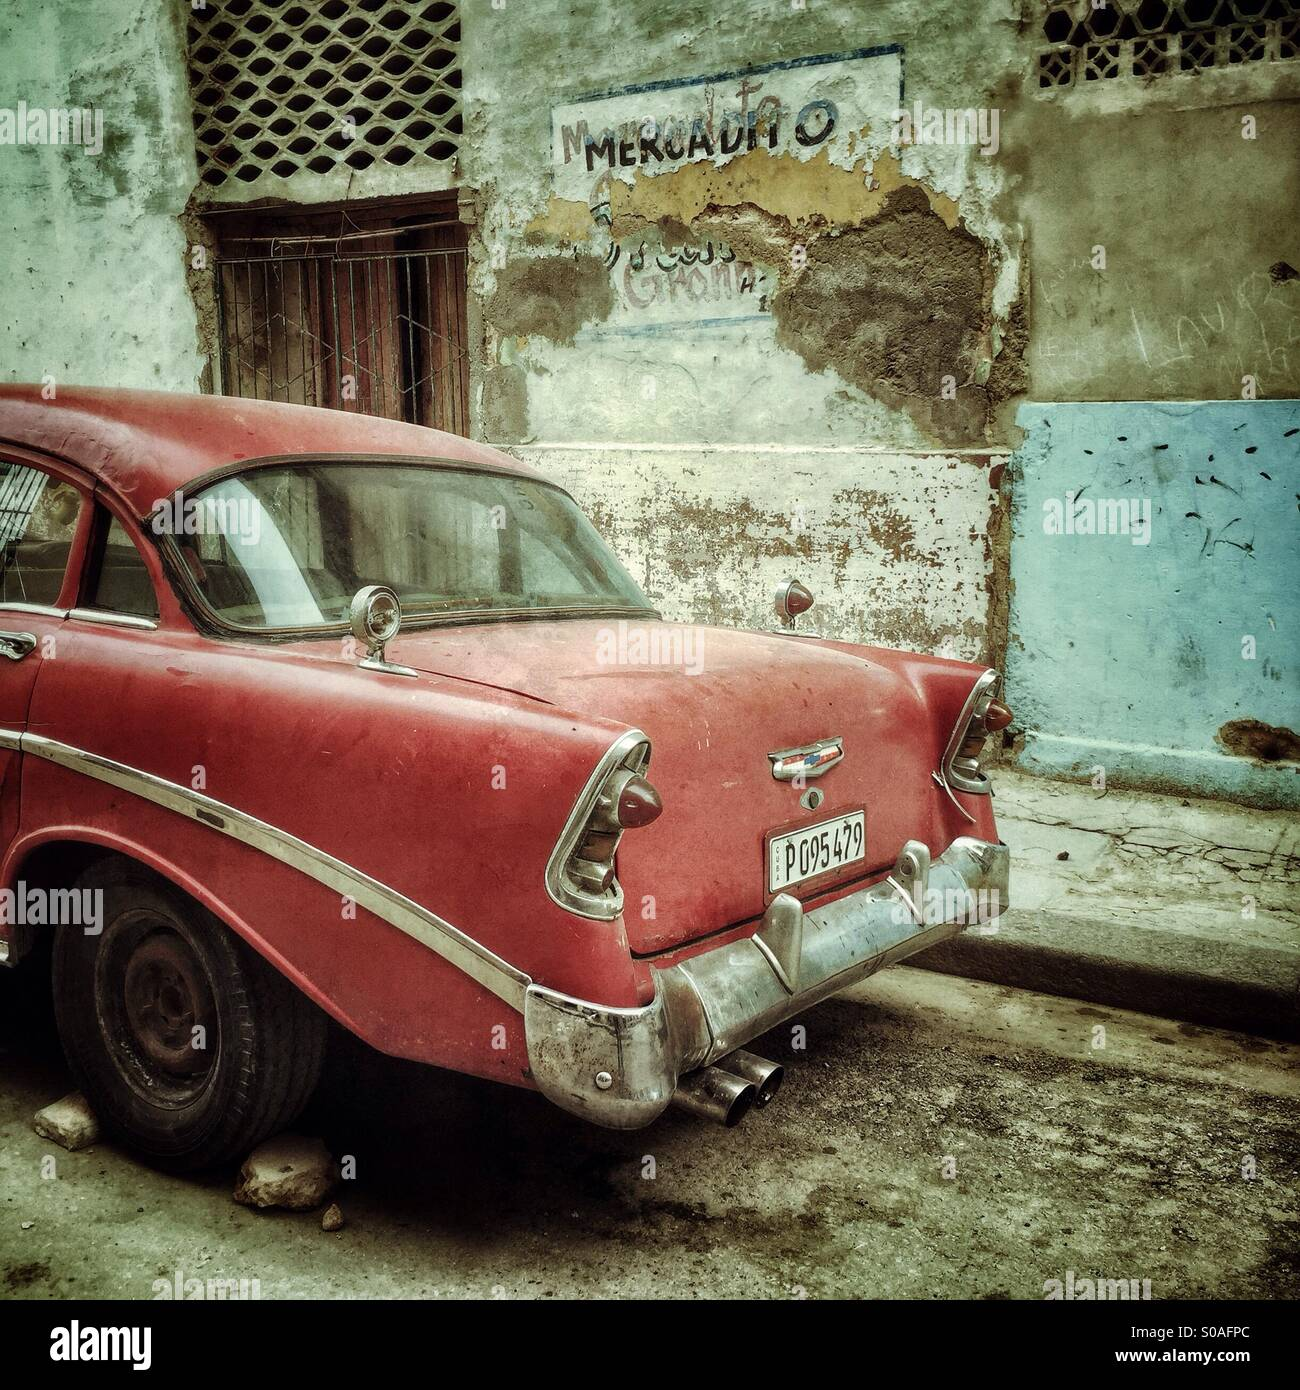 Rear view of a red vintage Cuban Car, parked by a peeling painted decaying exterior wall. Havana, Cuba, Caribbean Stock Photo